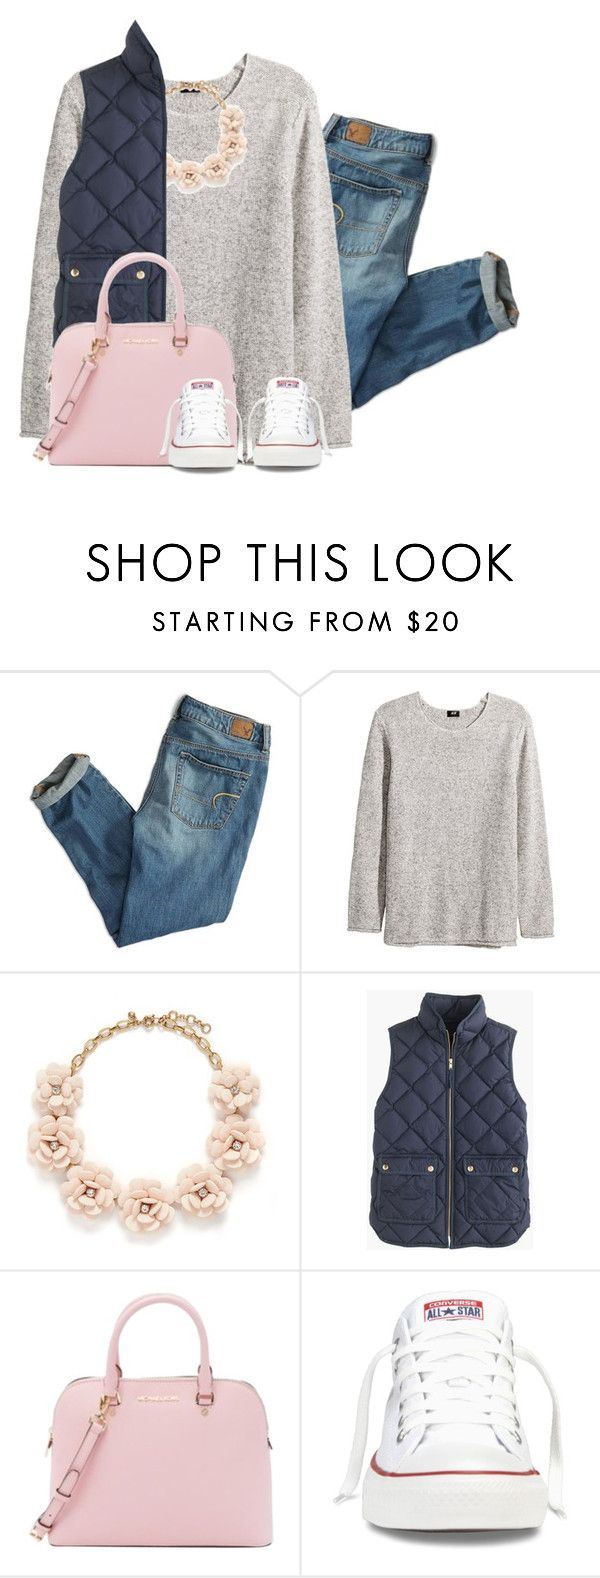 """""""Still Cold Outside..."""" by annarodgers ❤ liked on Polyvore featuring American Eagle Outfitters, H&M, J.Crew, Michael Kors and Converse"""